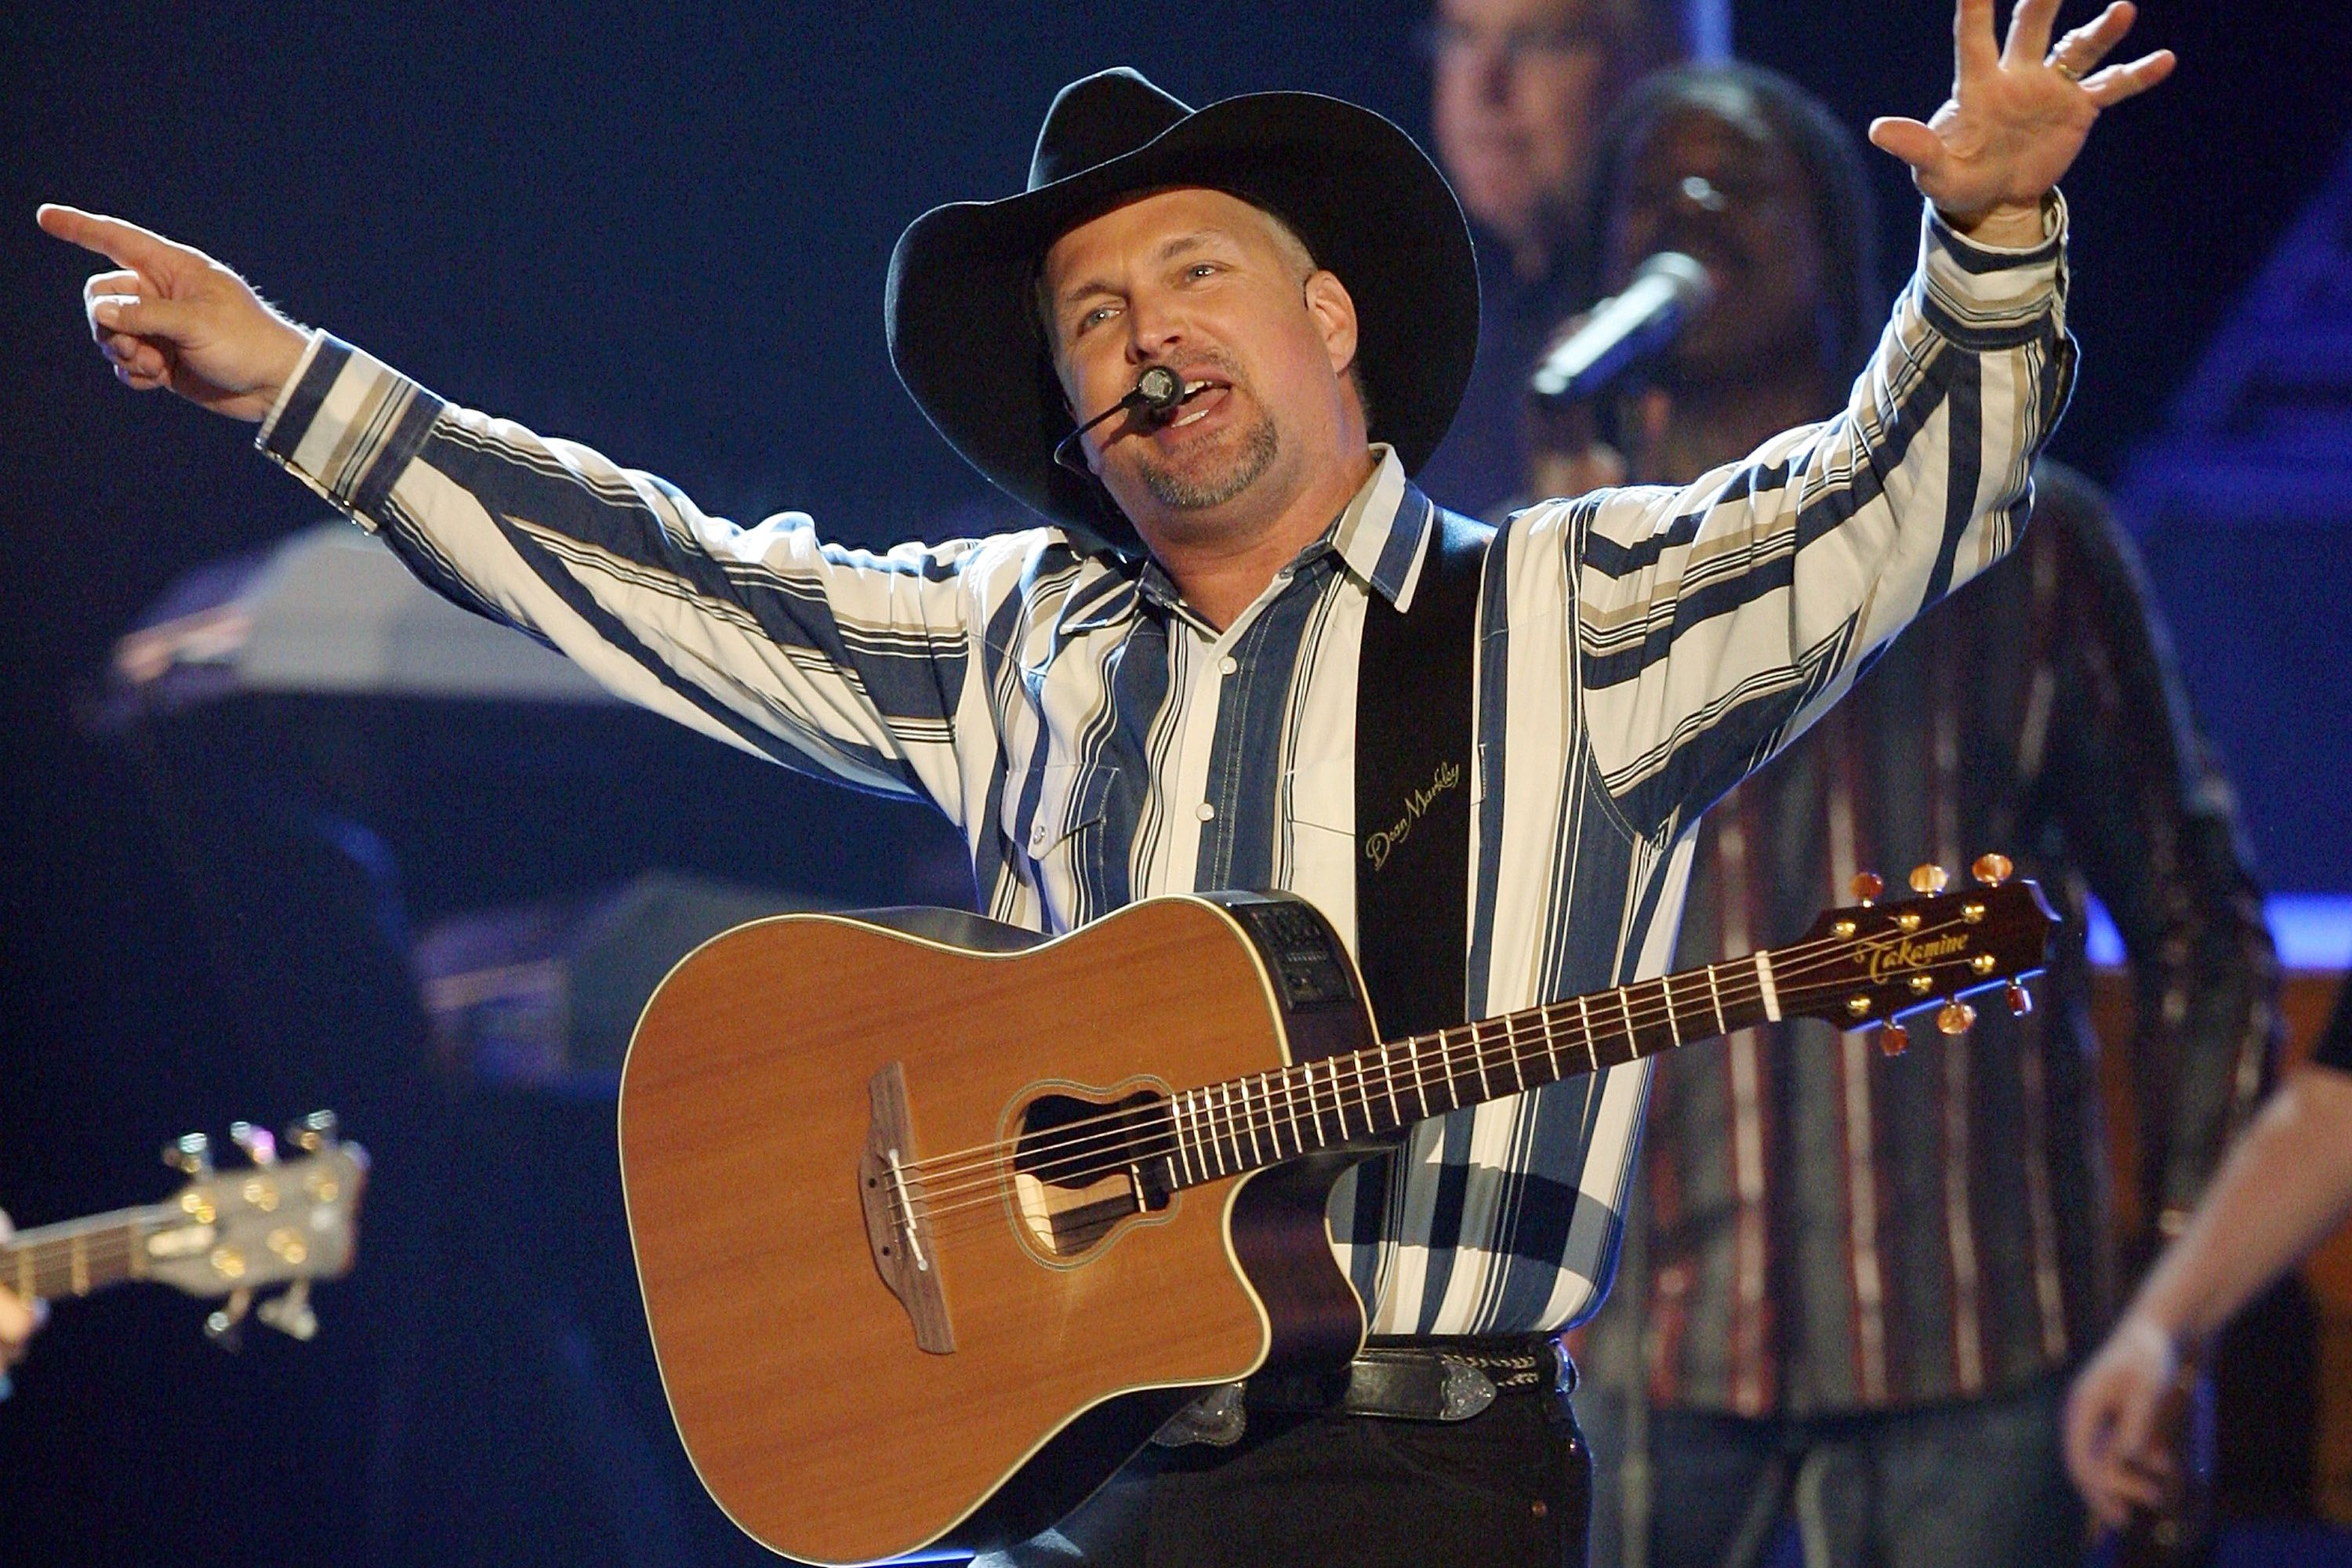 Watch Garth Brooks' Daughter Beautifully Cover One of His Songs